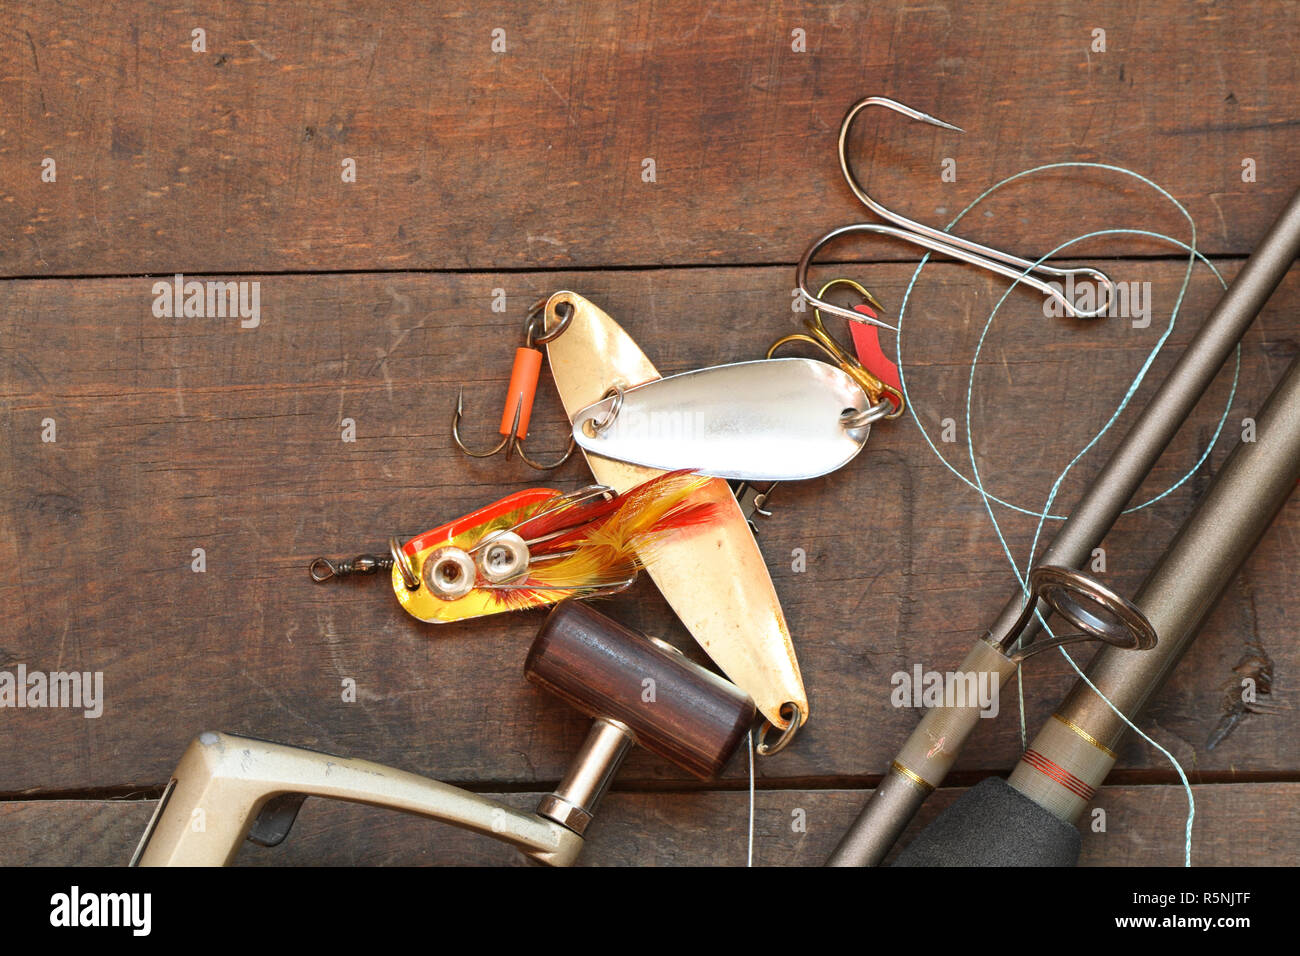 Closeup of spinning rod and other fishing tacle lying on wooden background Stock Photo